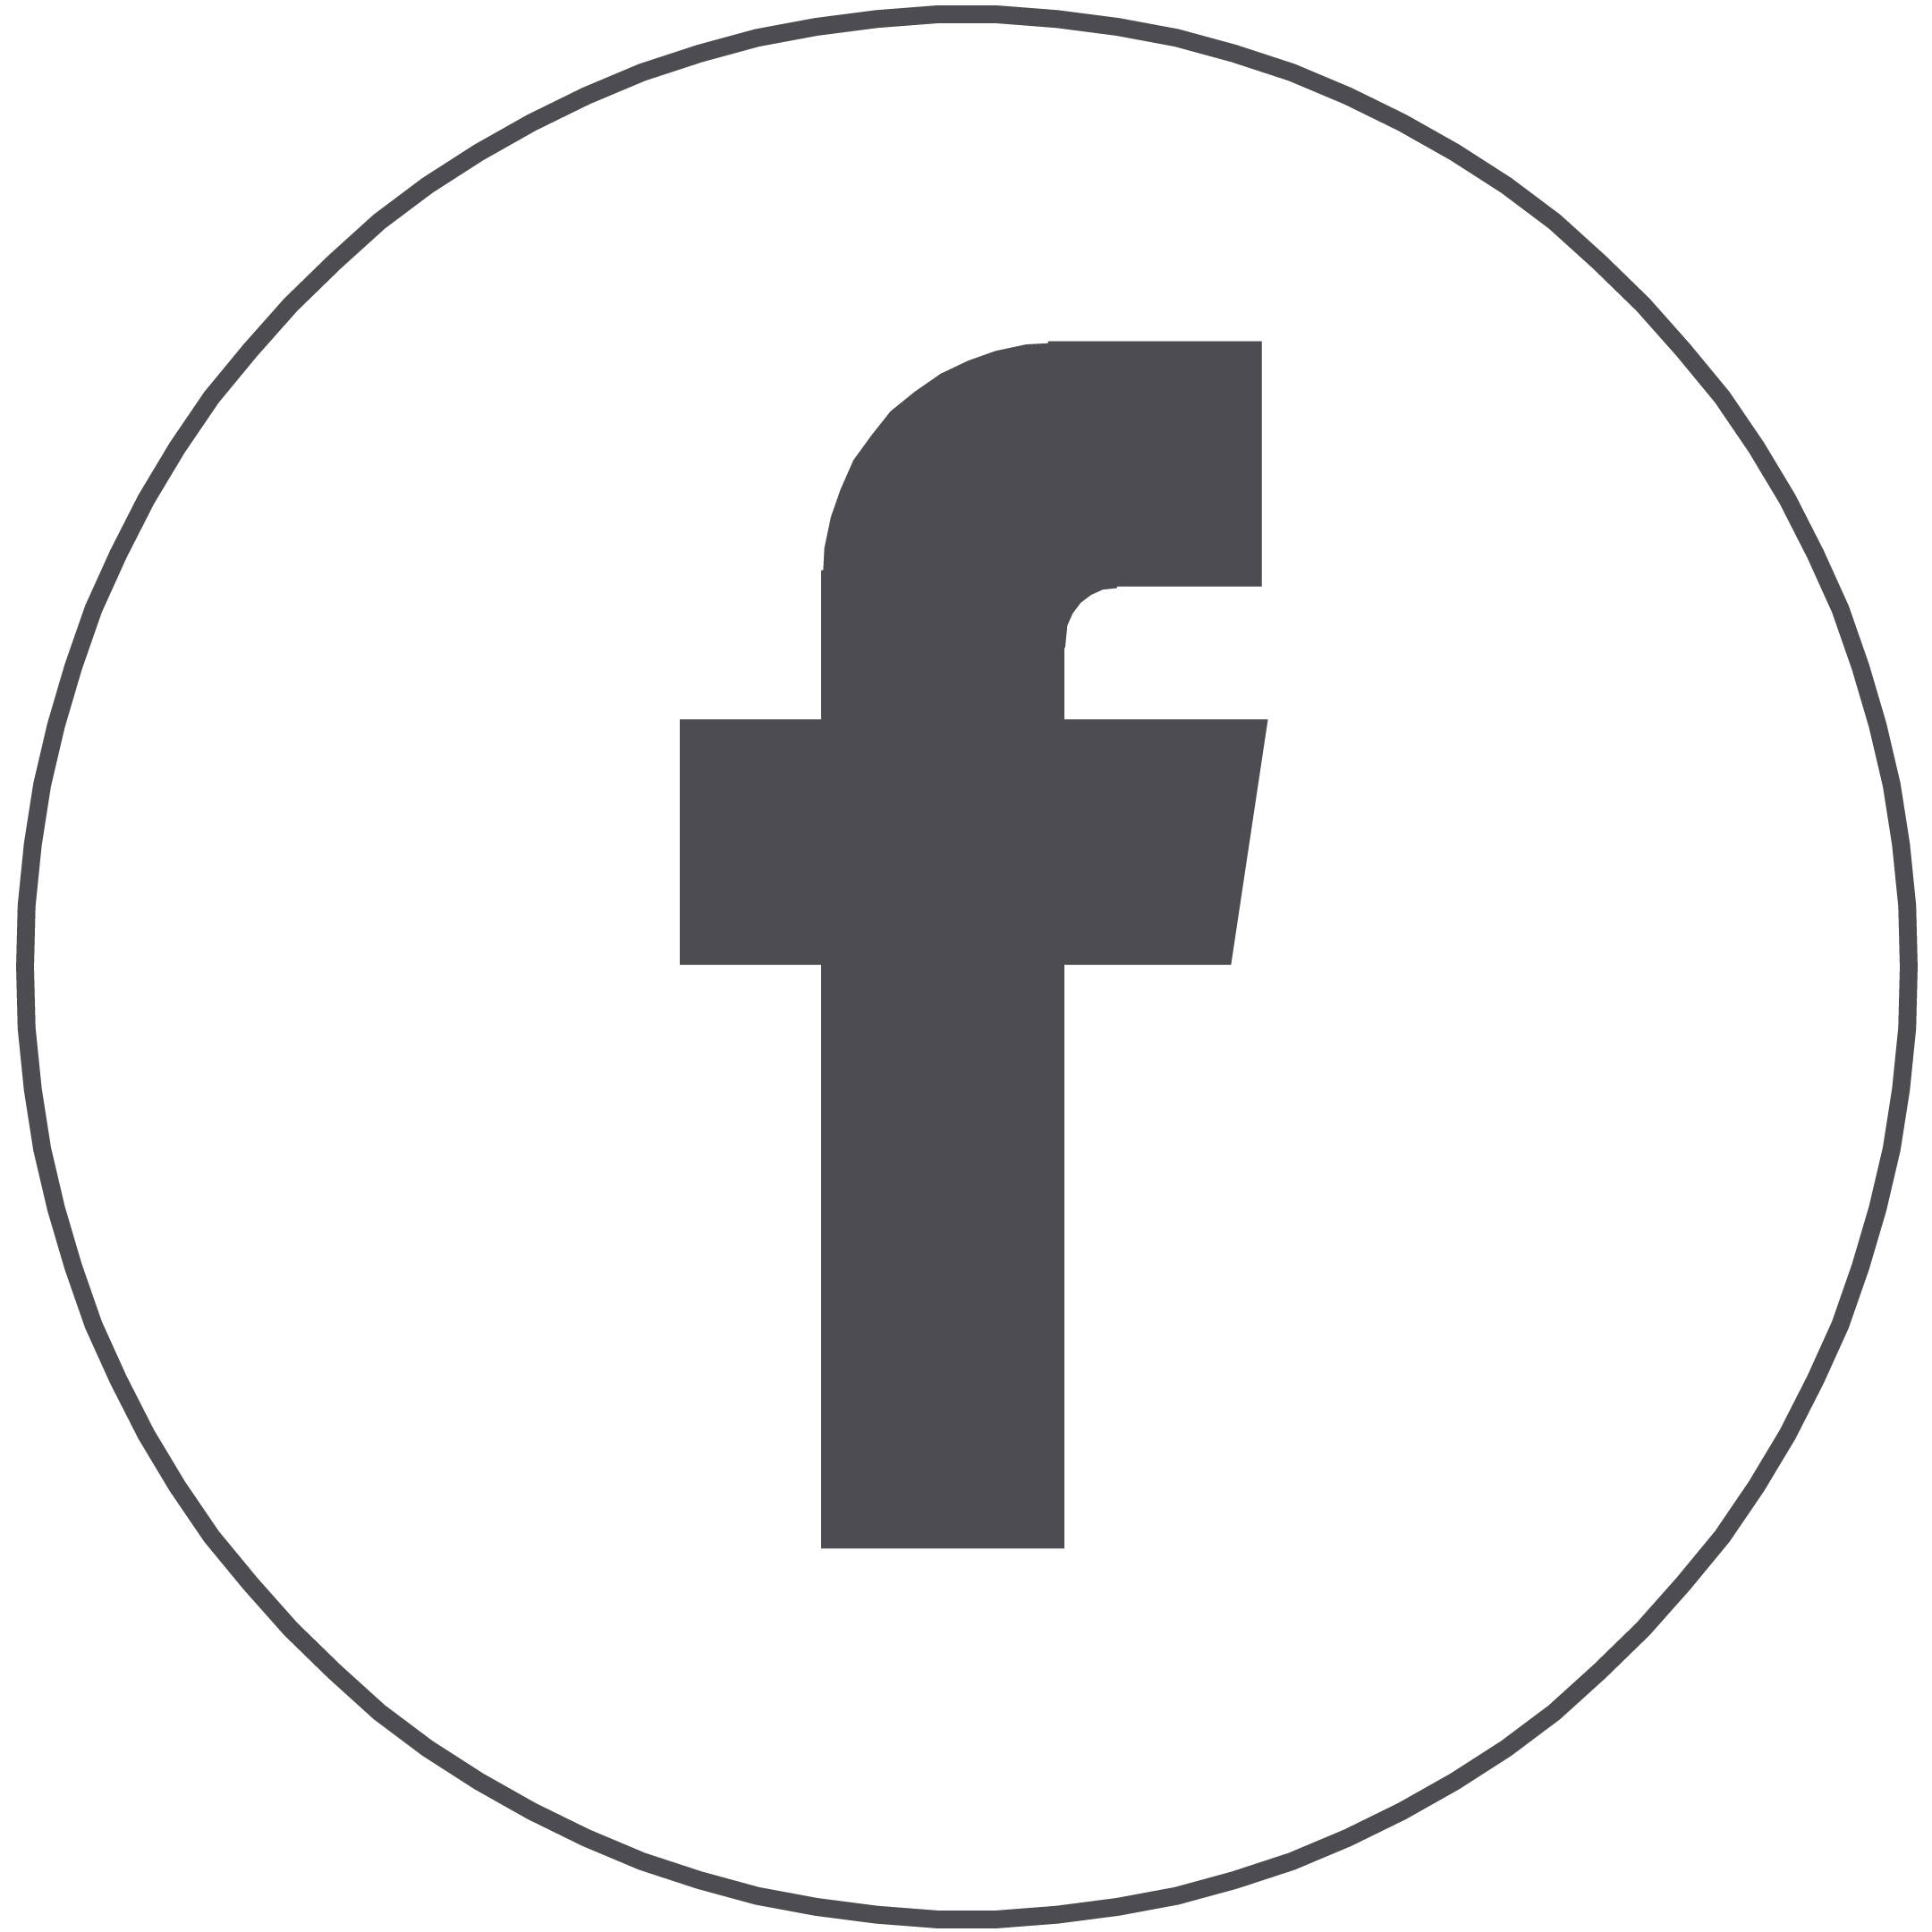 FACEBOOK CIRCLE - Facebook Icon Ai PNG